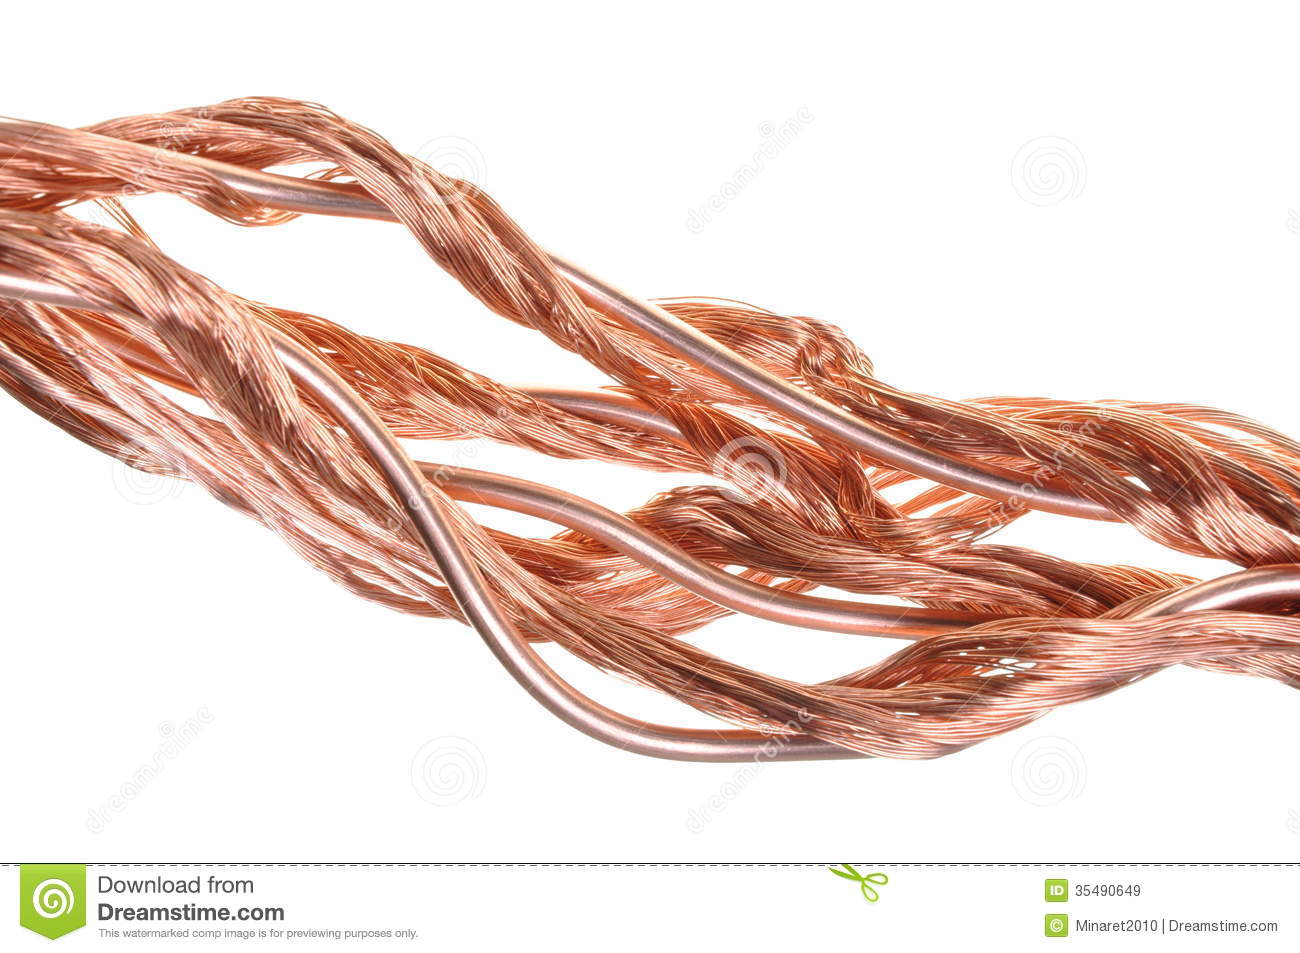 Copper Cable Market Share : Copper wire for the power industry royalty free stock